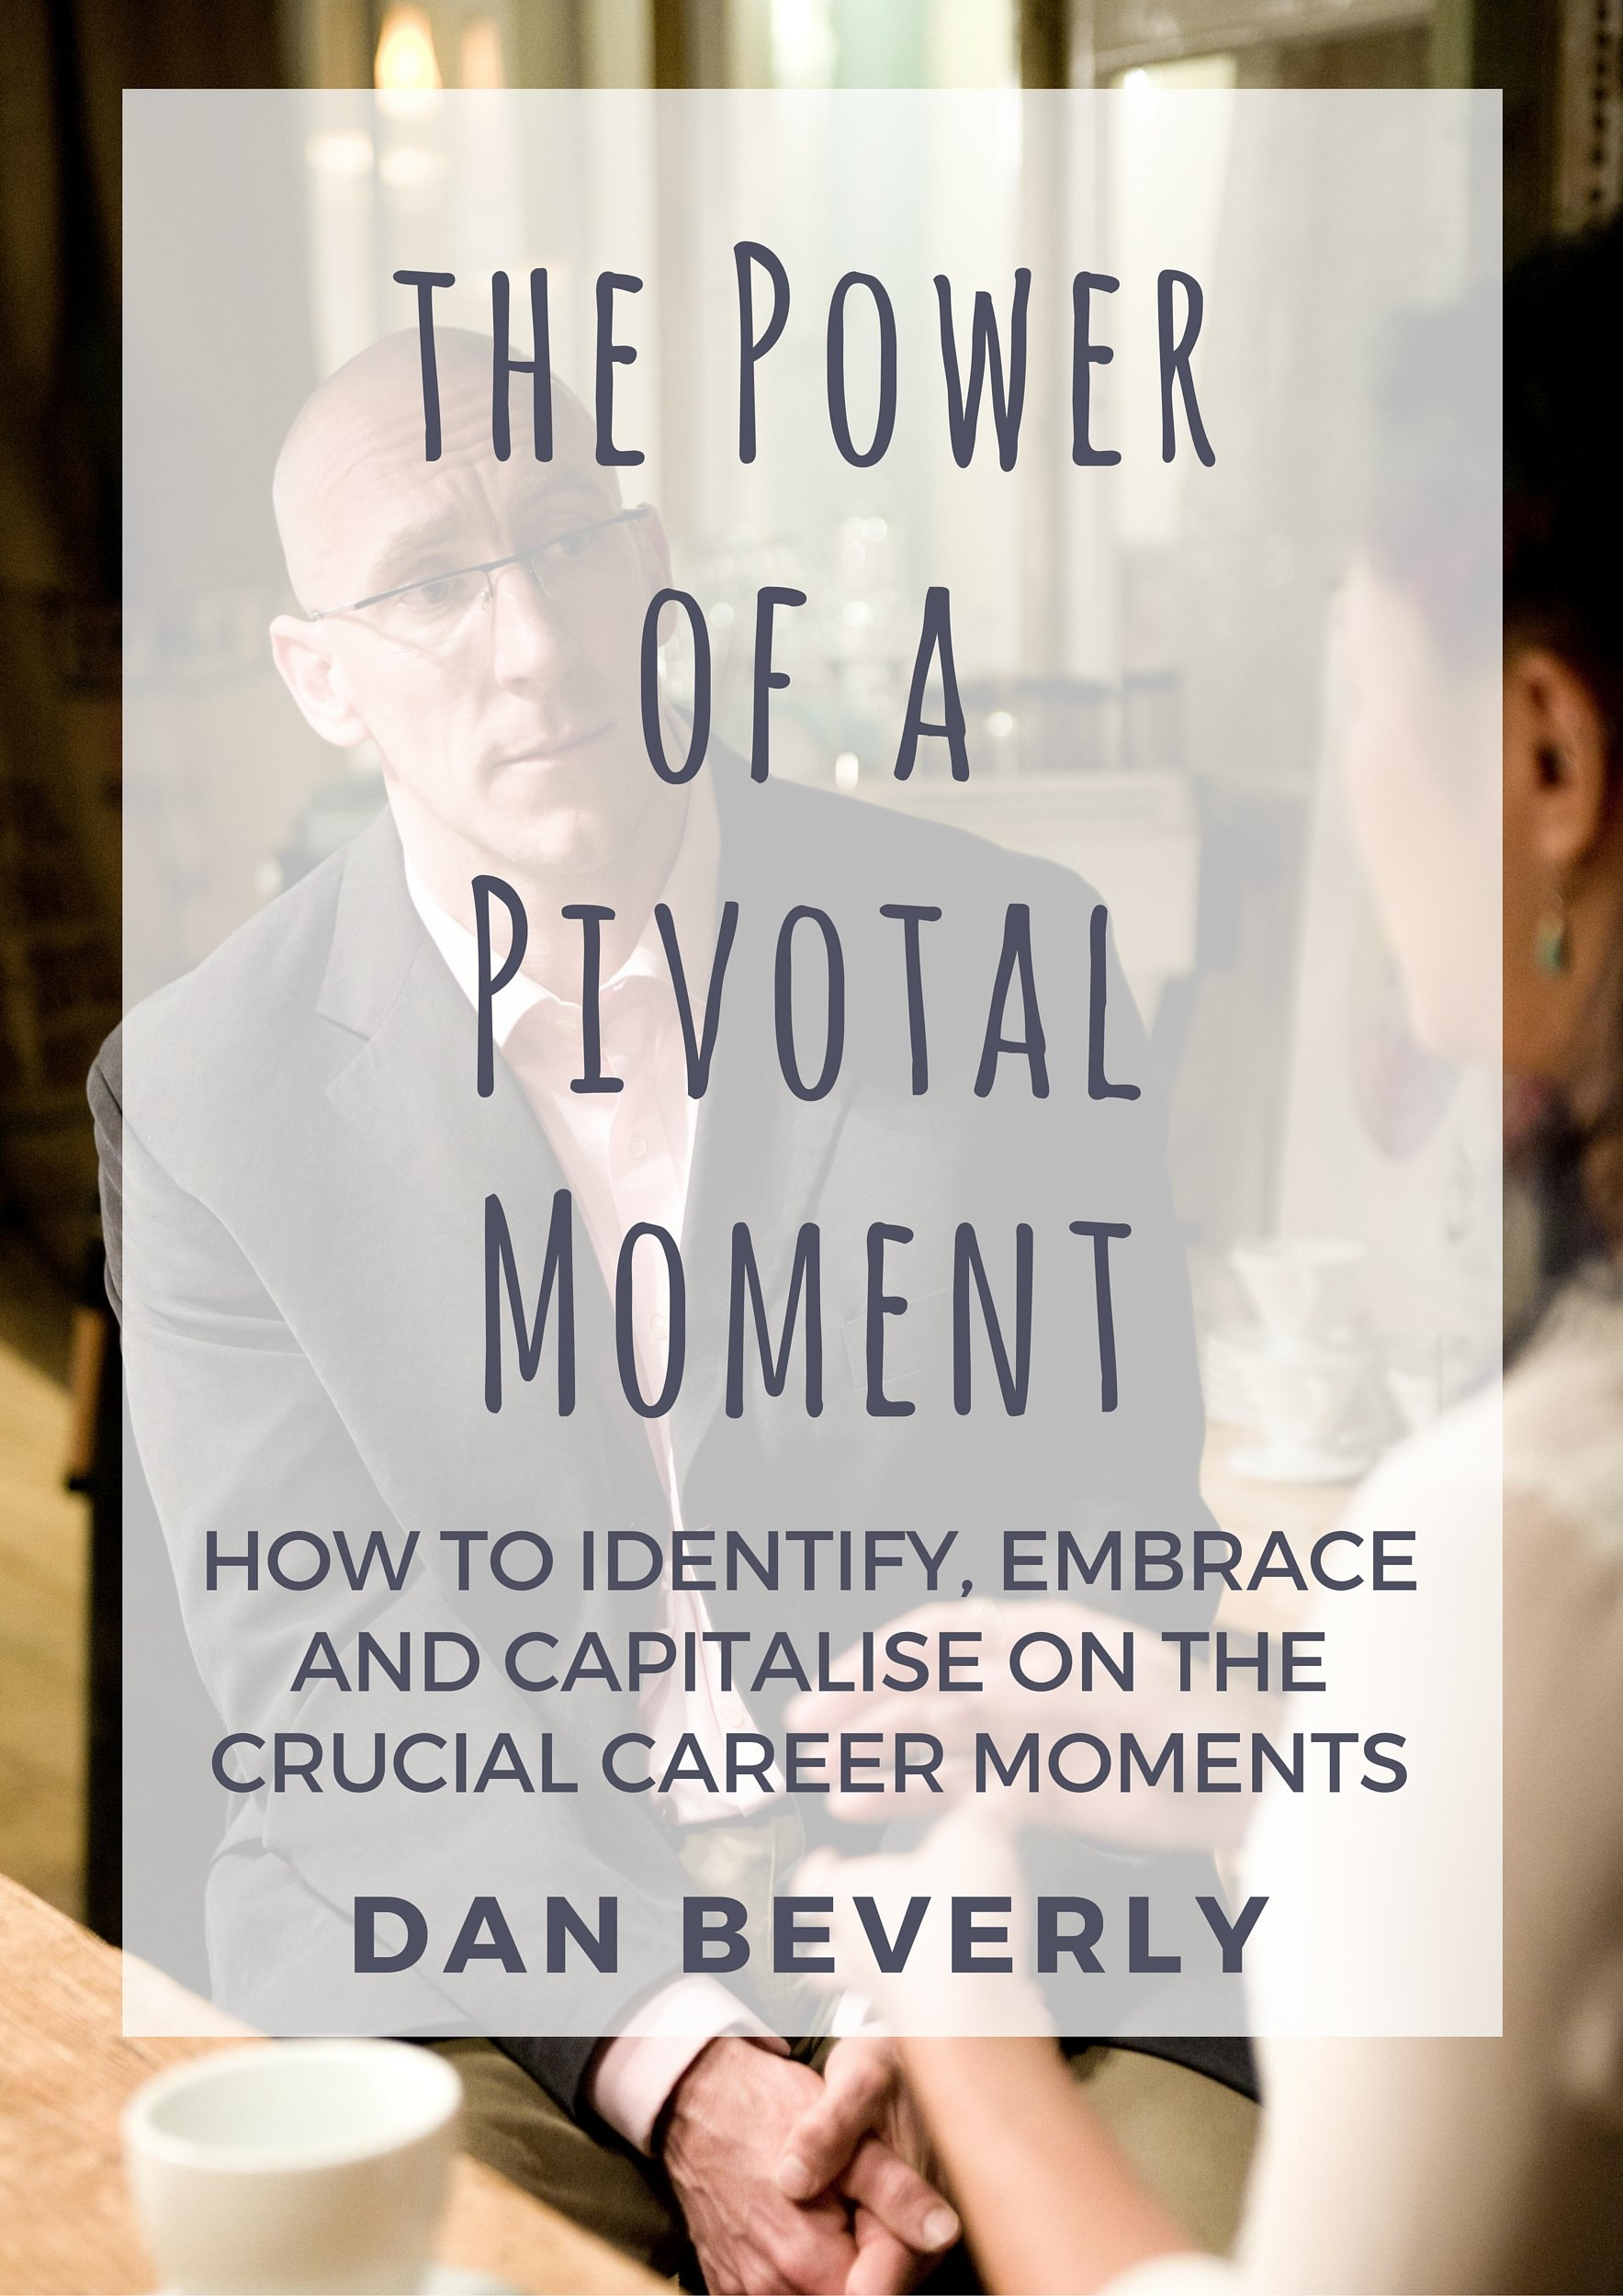 The Power of a Pivotal Moment: How to Identify, Embrace and Capitalise on the Crucial Career Moments